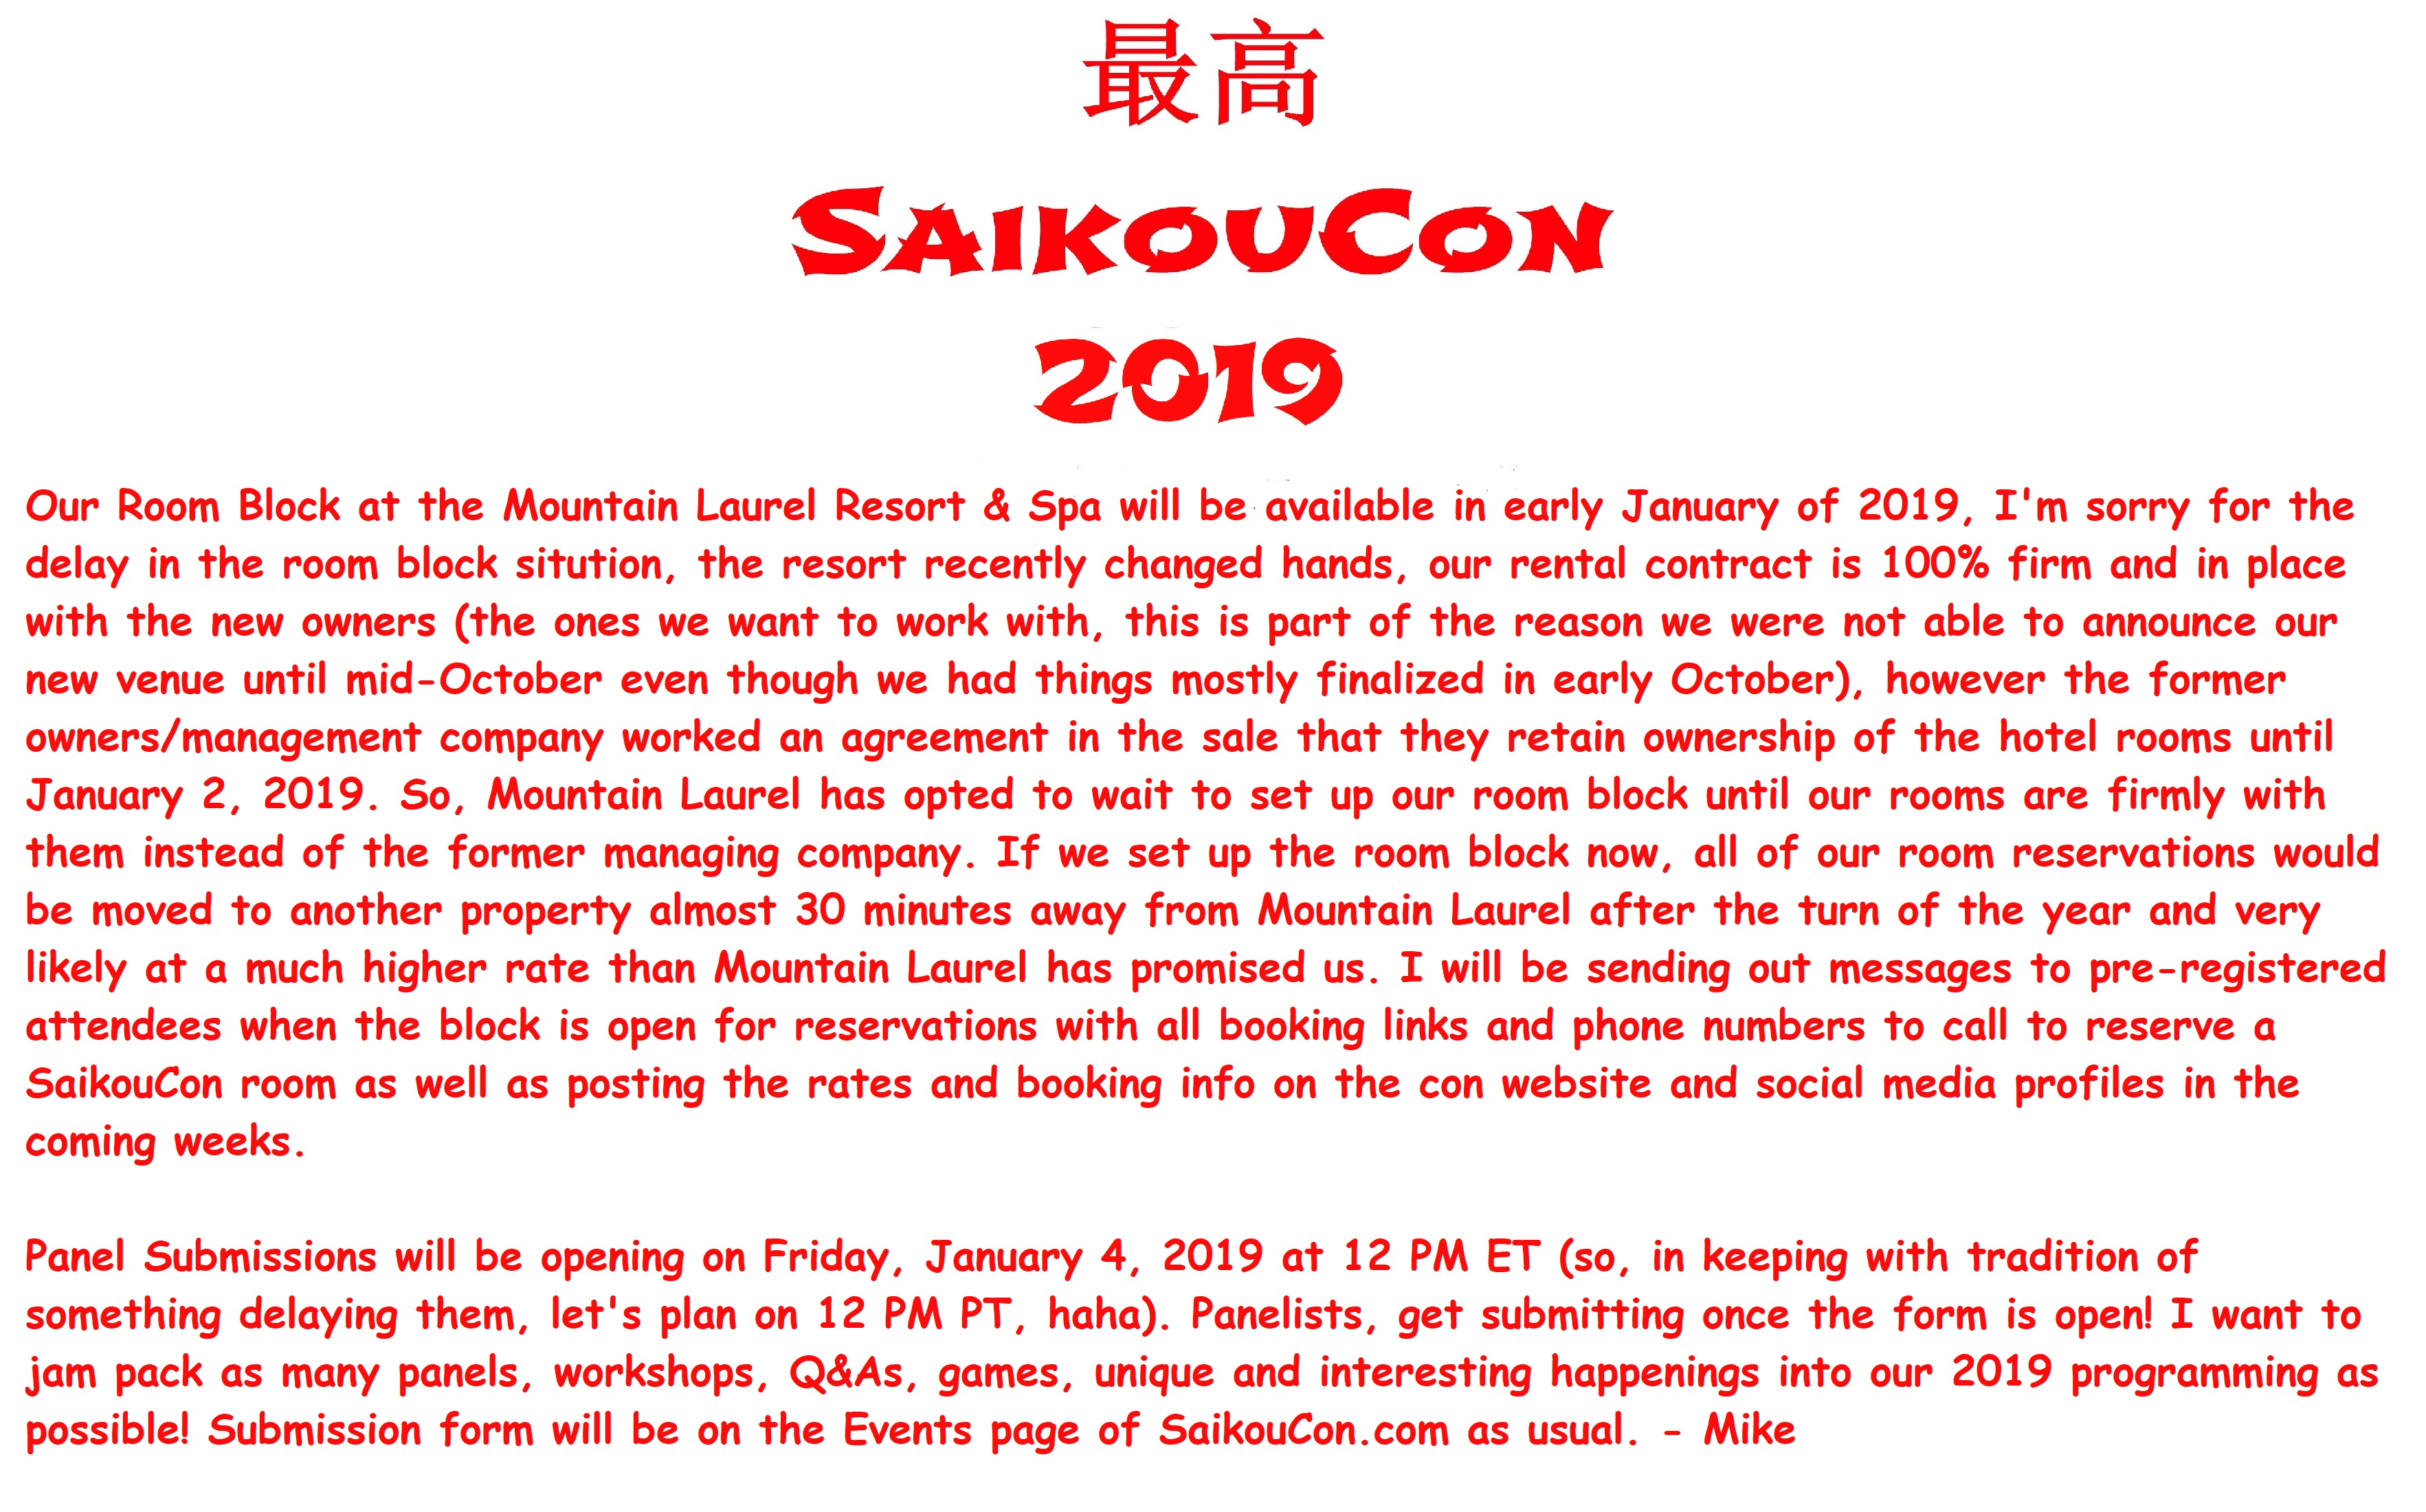 SaikouCon Room Block and Panel Submissions Announcement